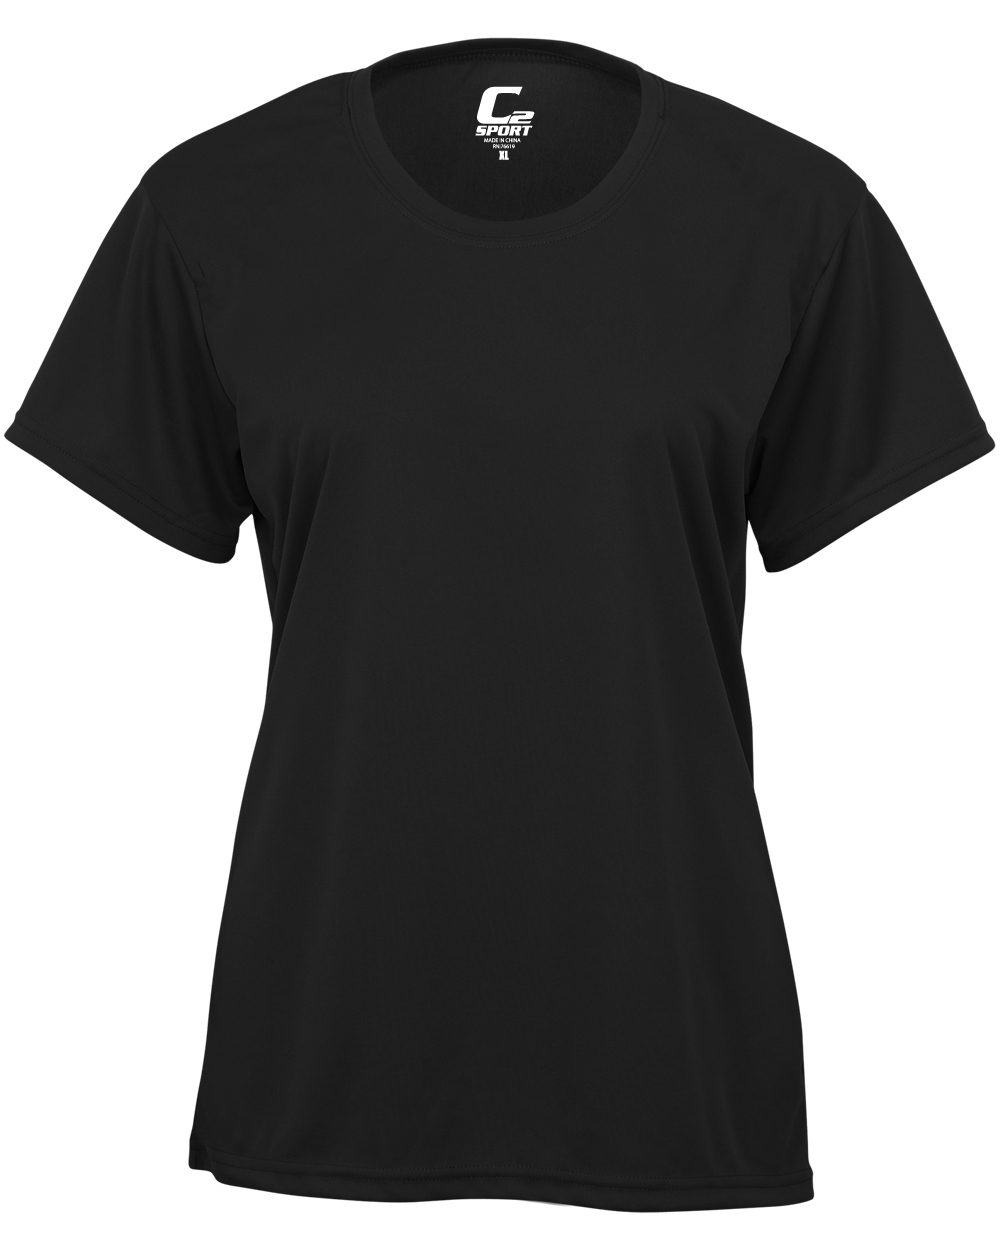 C2 Sport 5600 - Ladies' Short Sleeve Performance T-Shirt